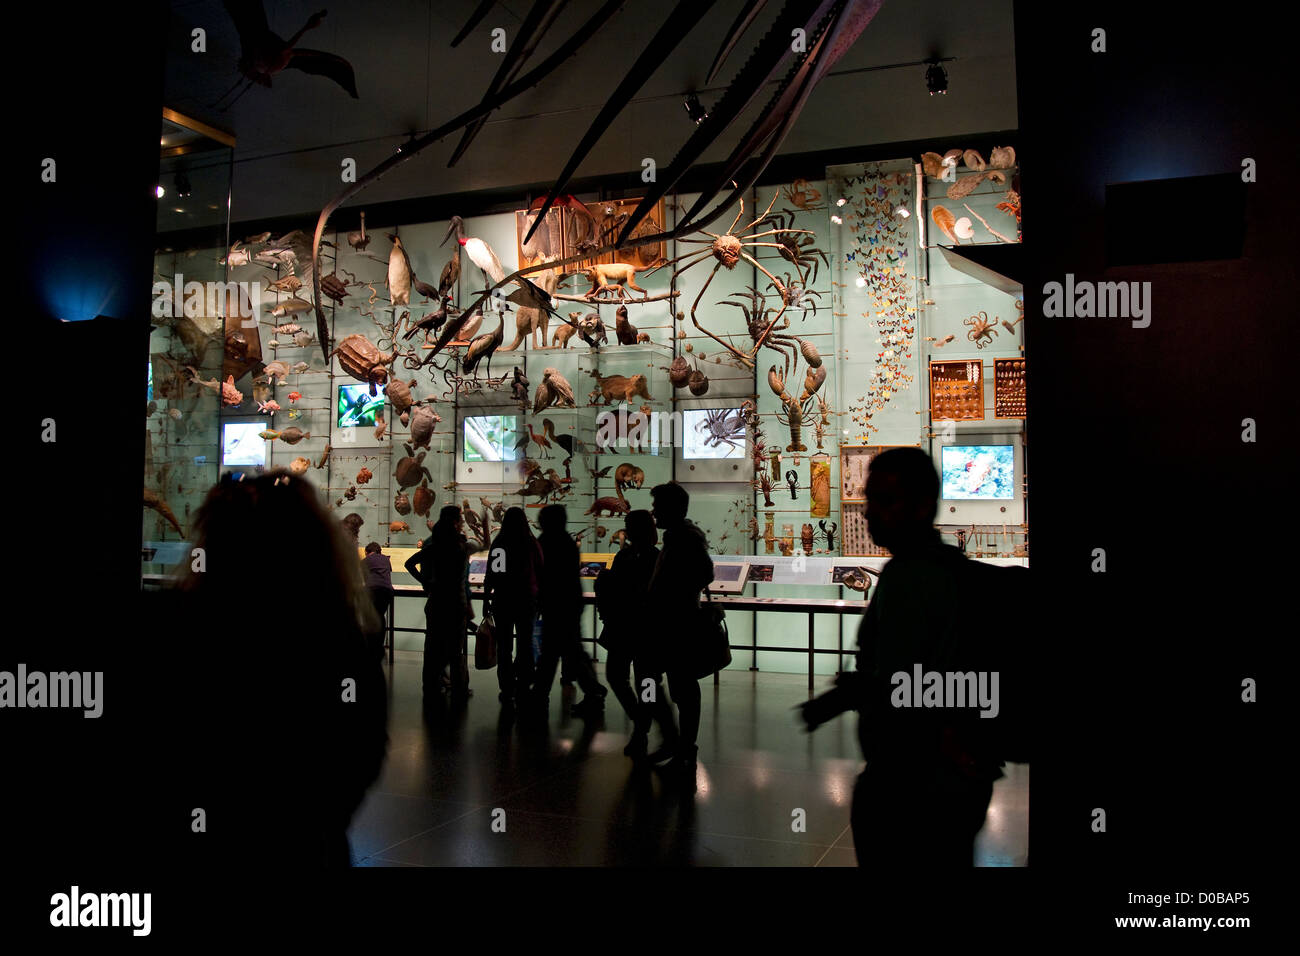 Visitors to the American Museum of Natural History view natural history exhibit display, New York City, NYC, US - Stock Image